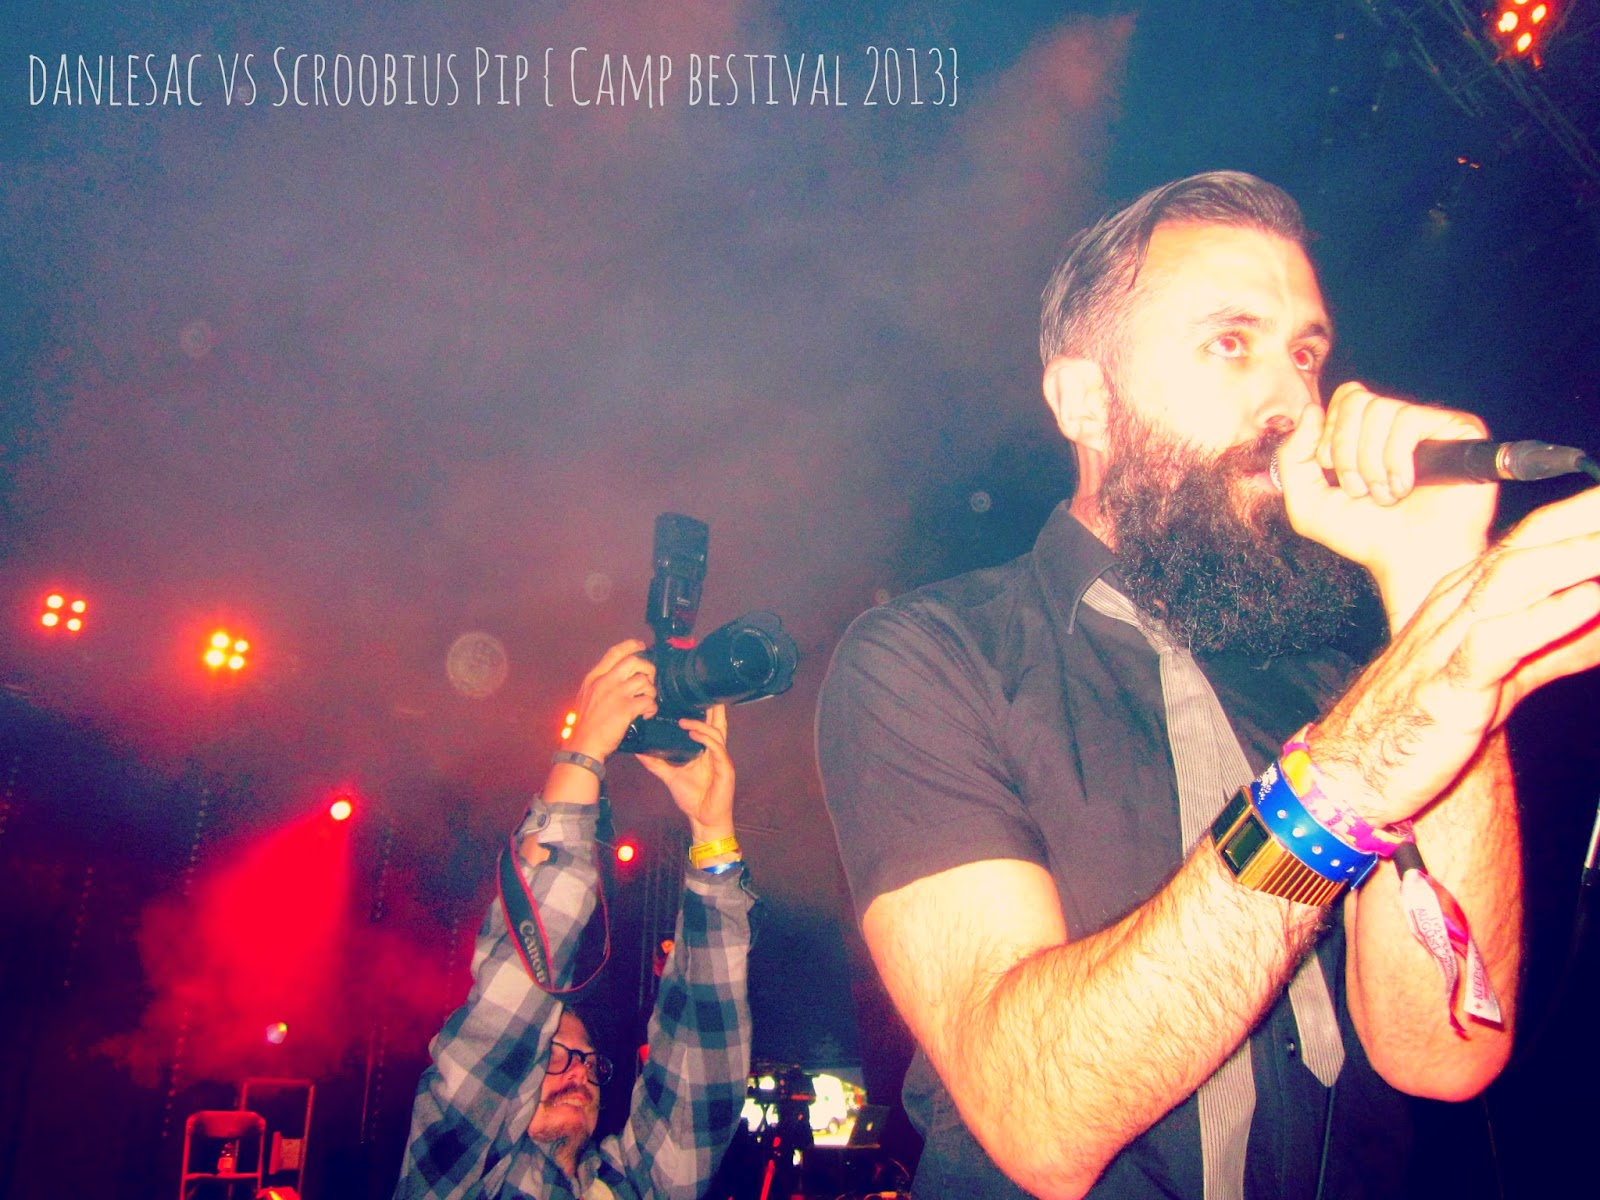 dan le sac vs Scroobius Pip - Camp Bestival 2013 // 76sunflowers